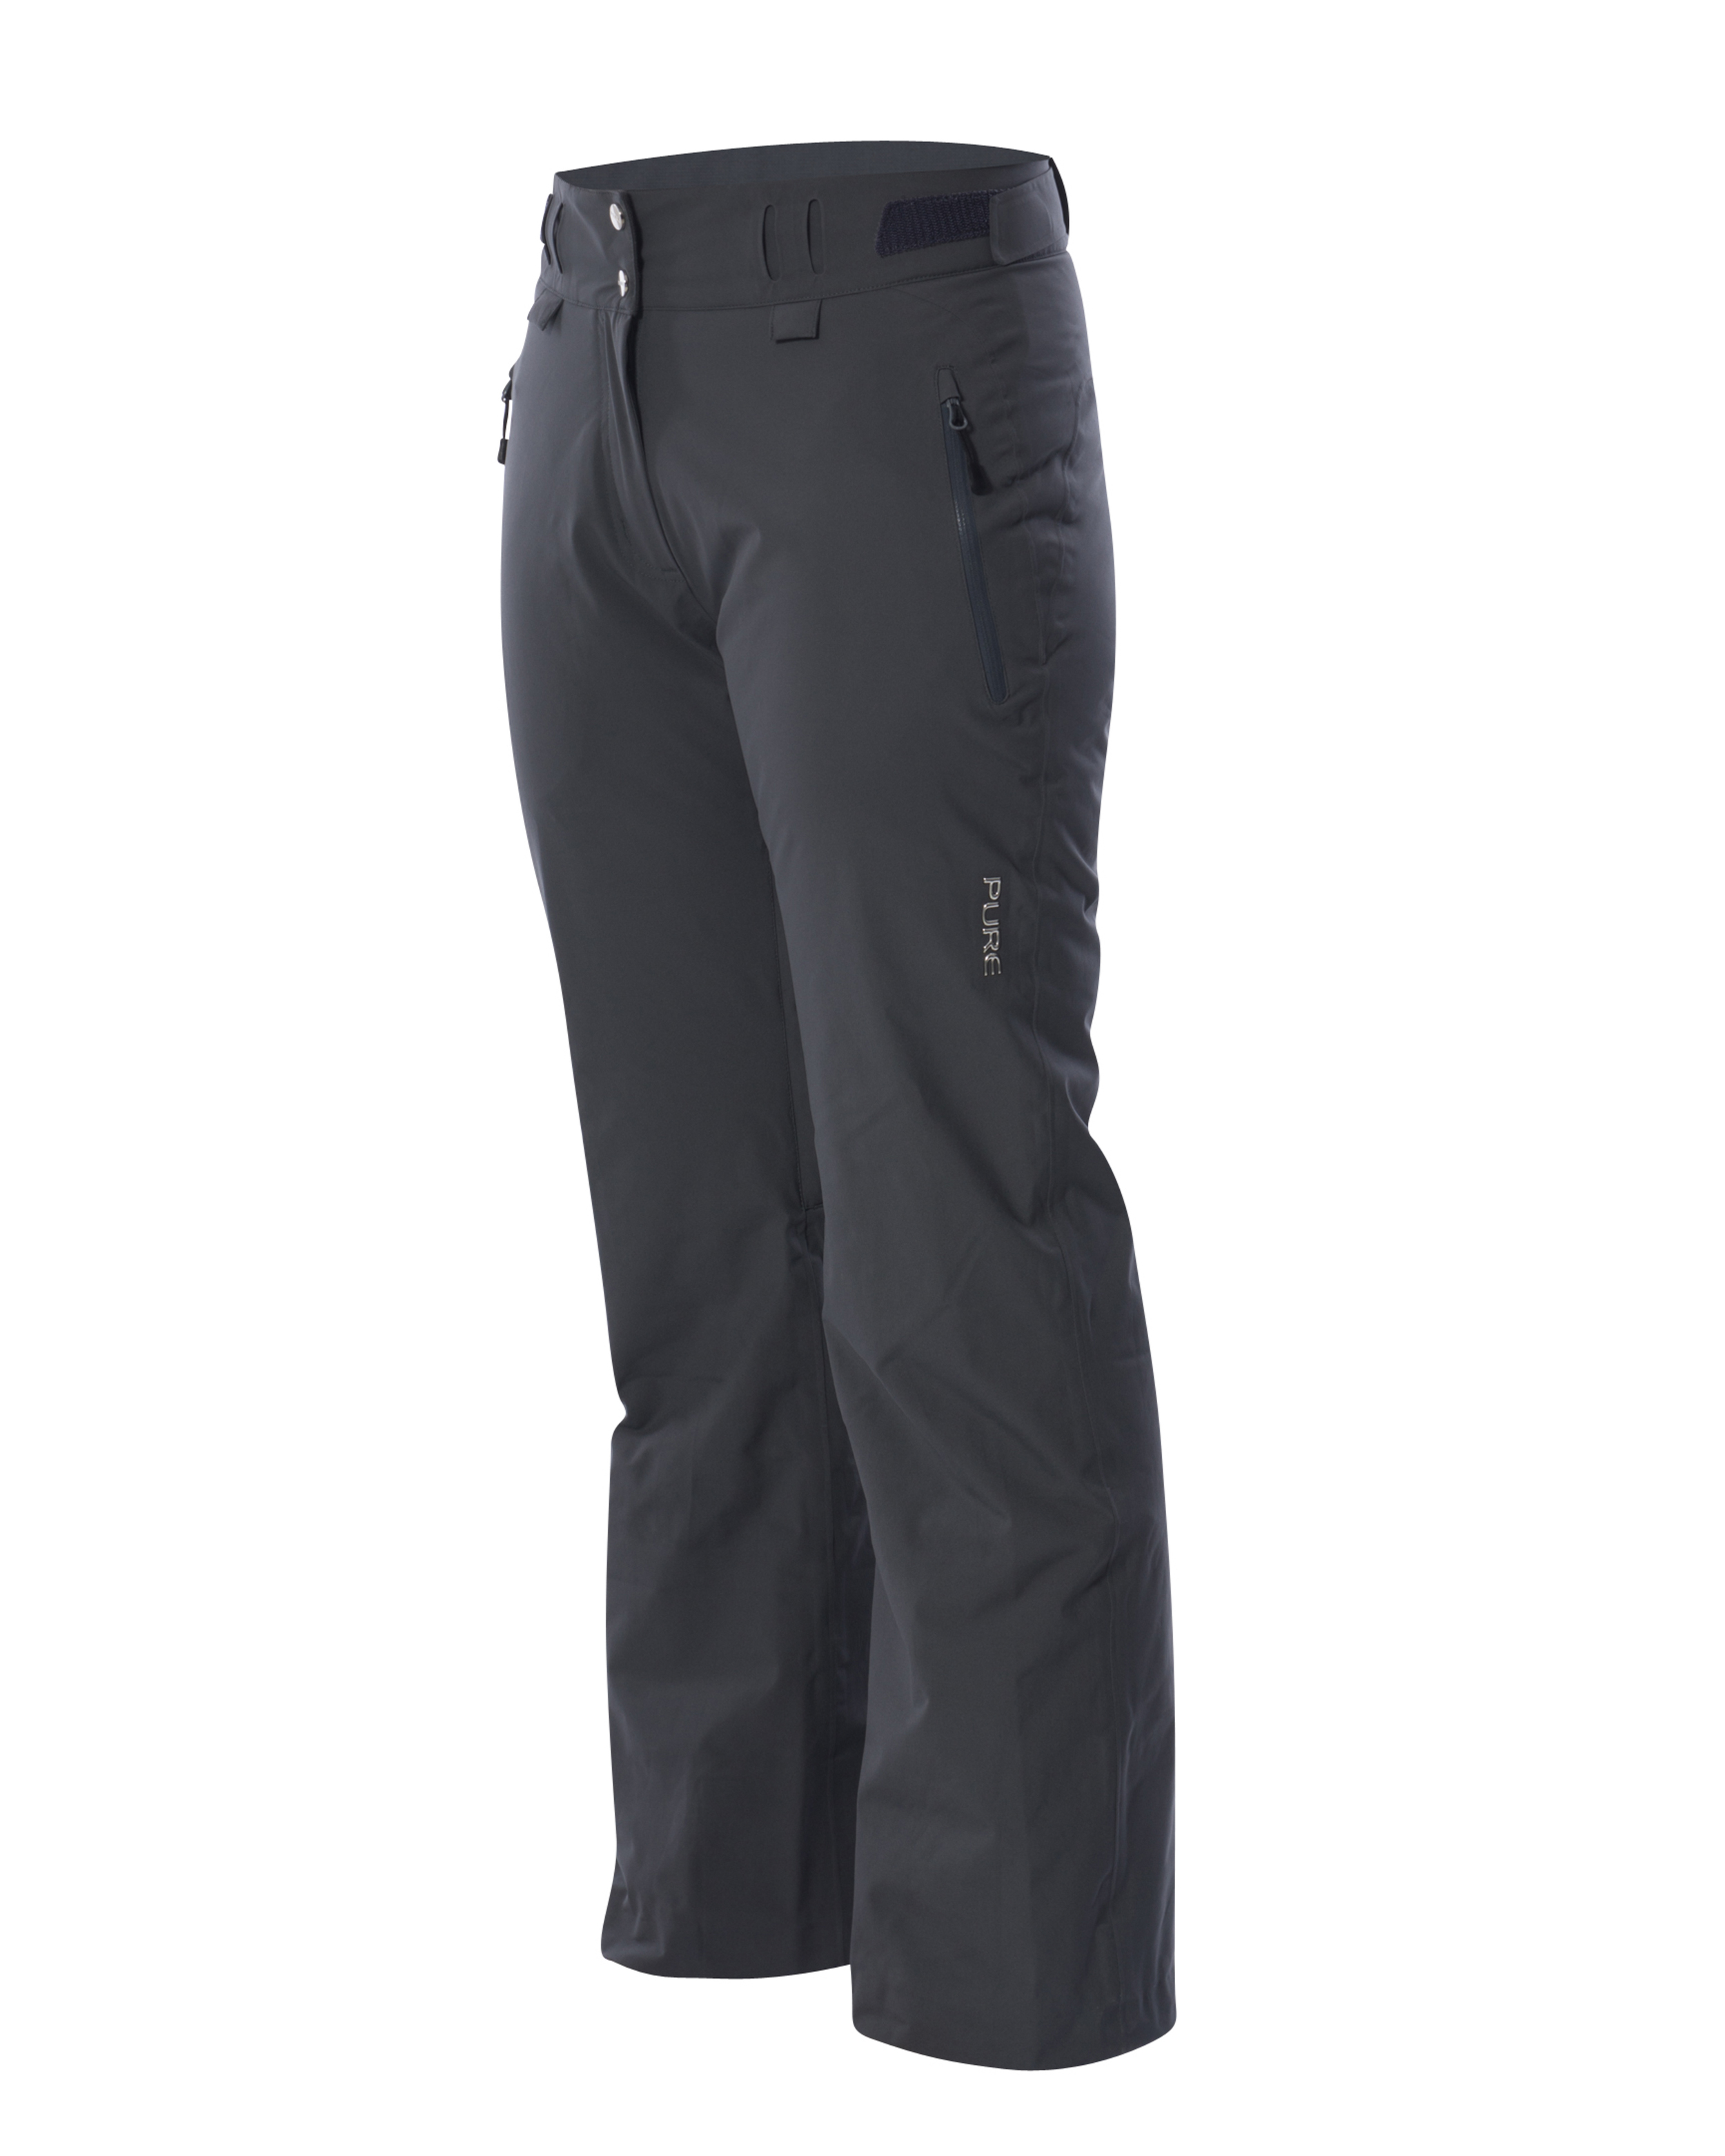 Remarkables Women's Pure Snow - Ebony